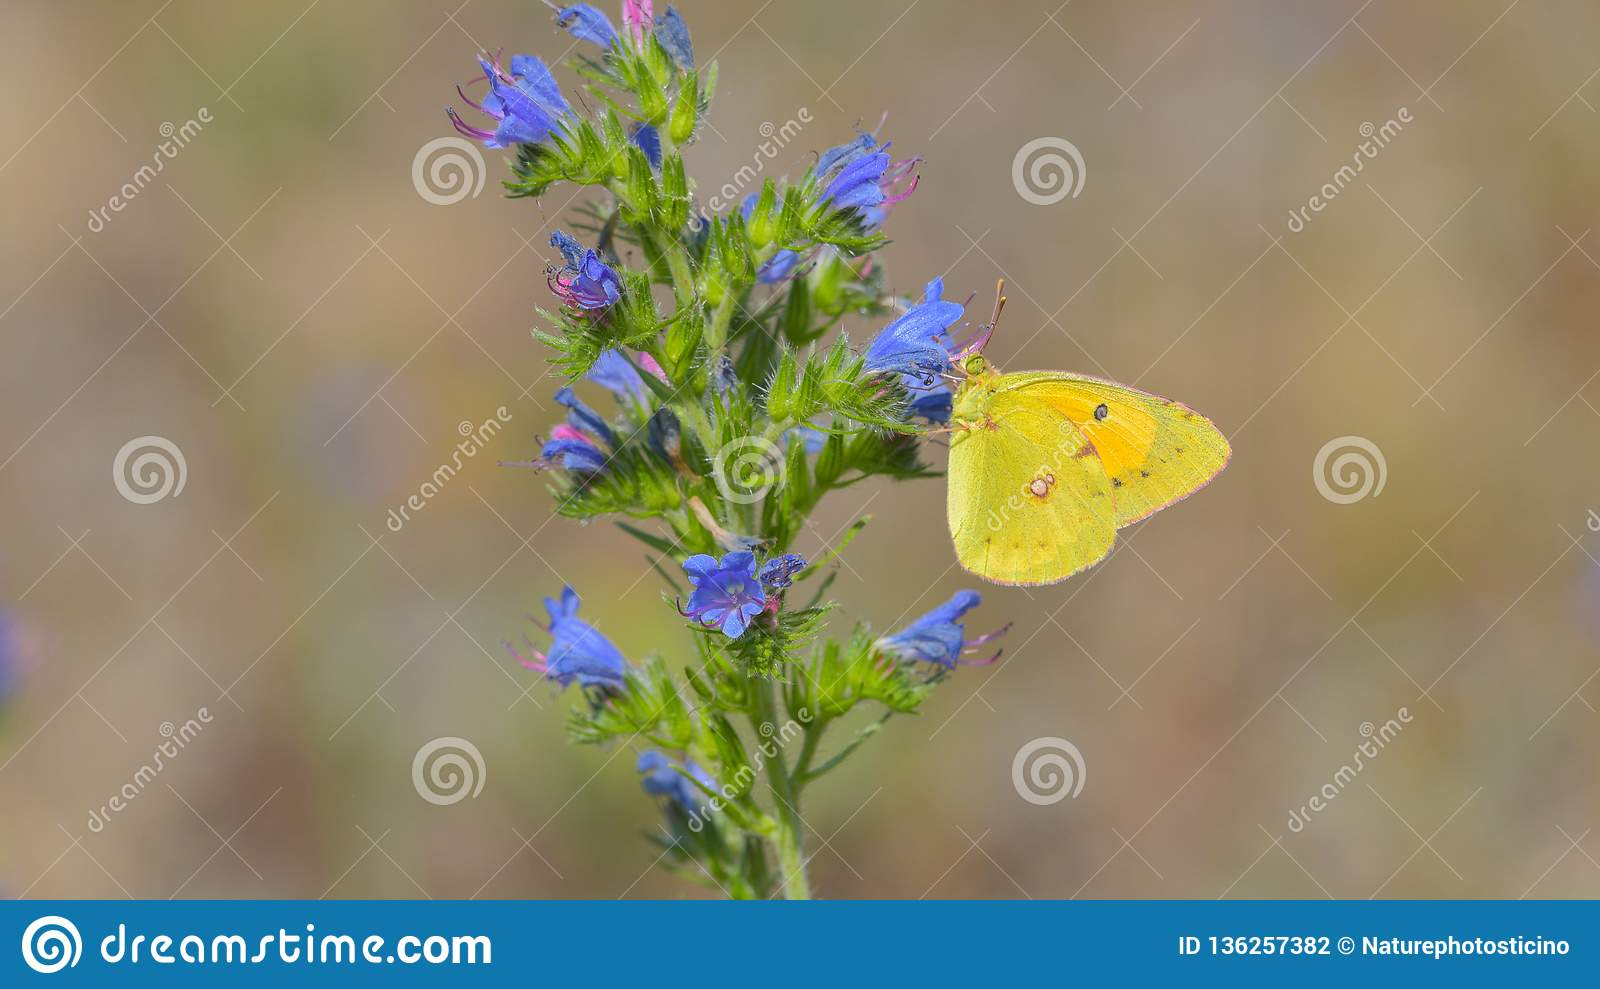 Yellow and orange butterfly laid on a blue and pink flower